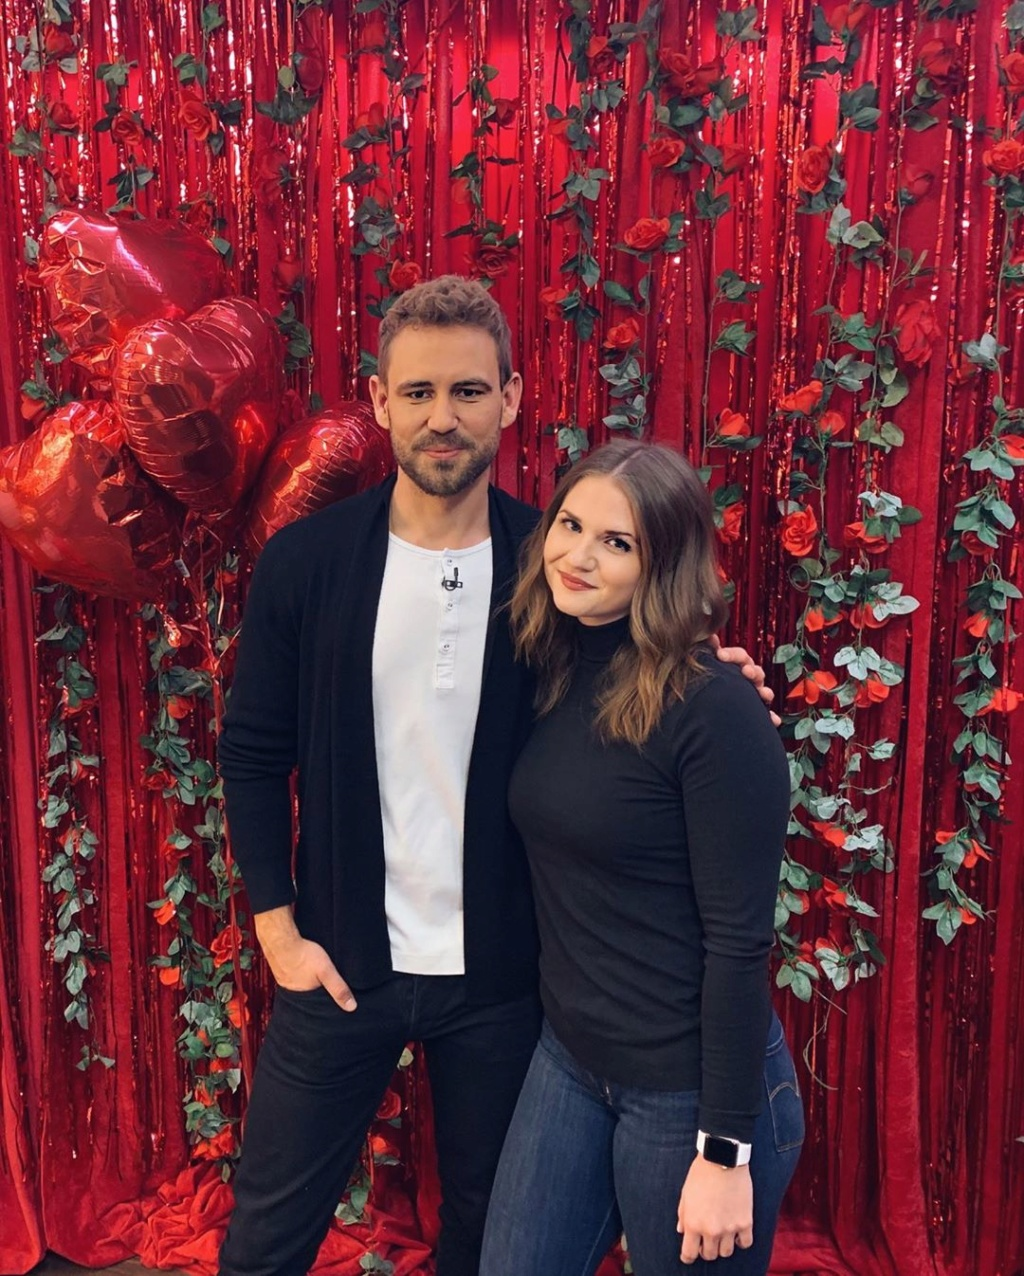 Nick Viall - Bachelor 21 - FAN Forum - Discussion #27 - Page 71 82826710